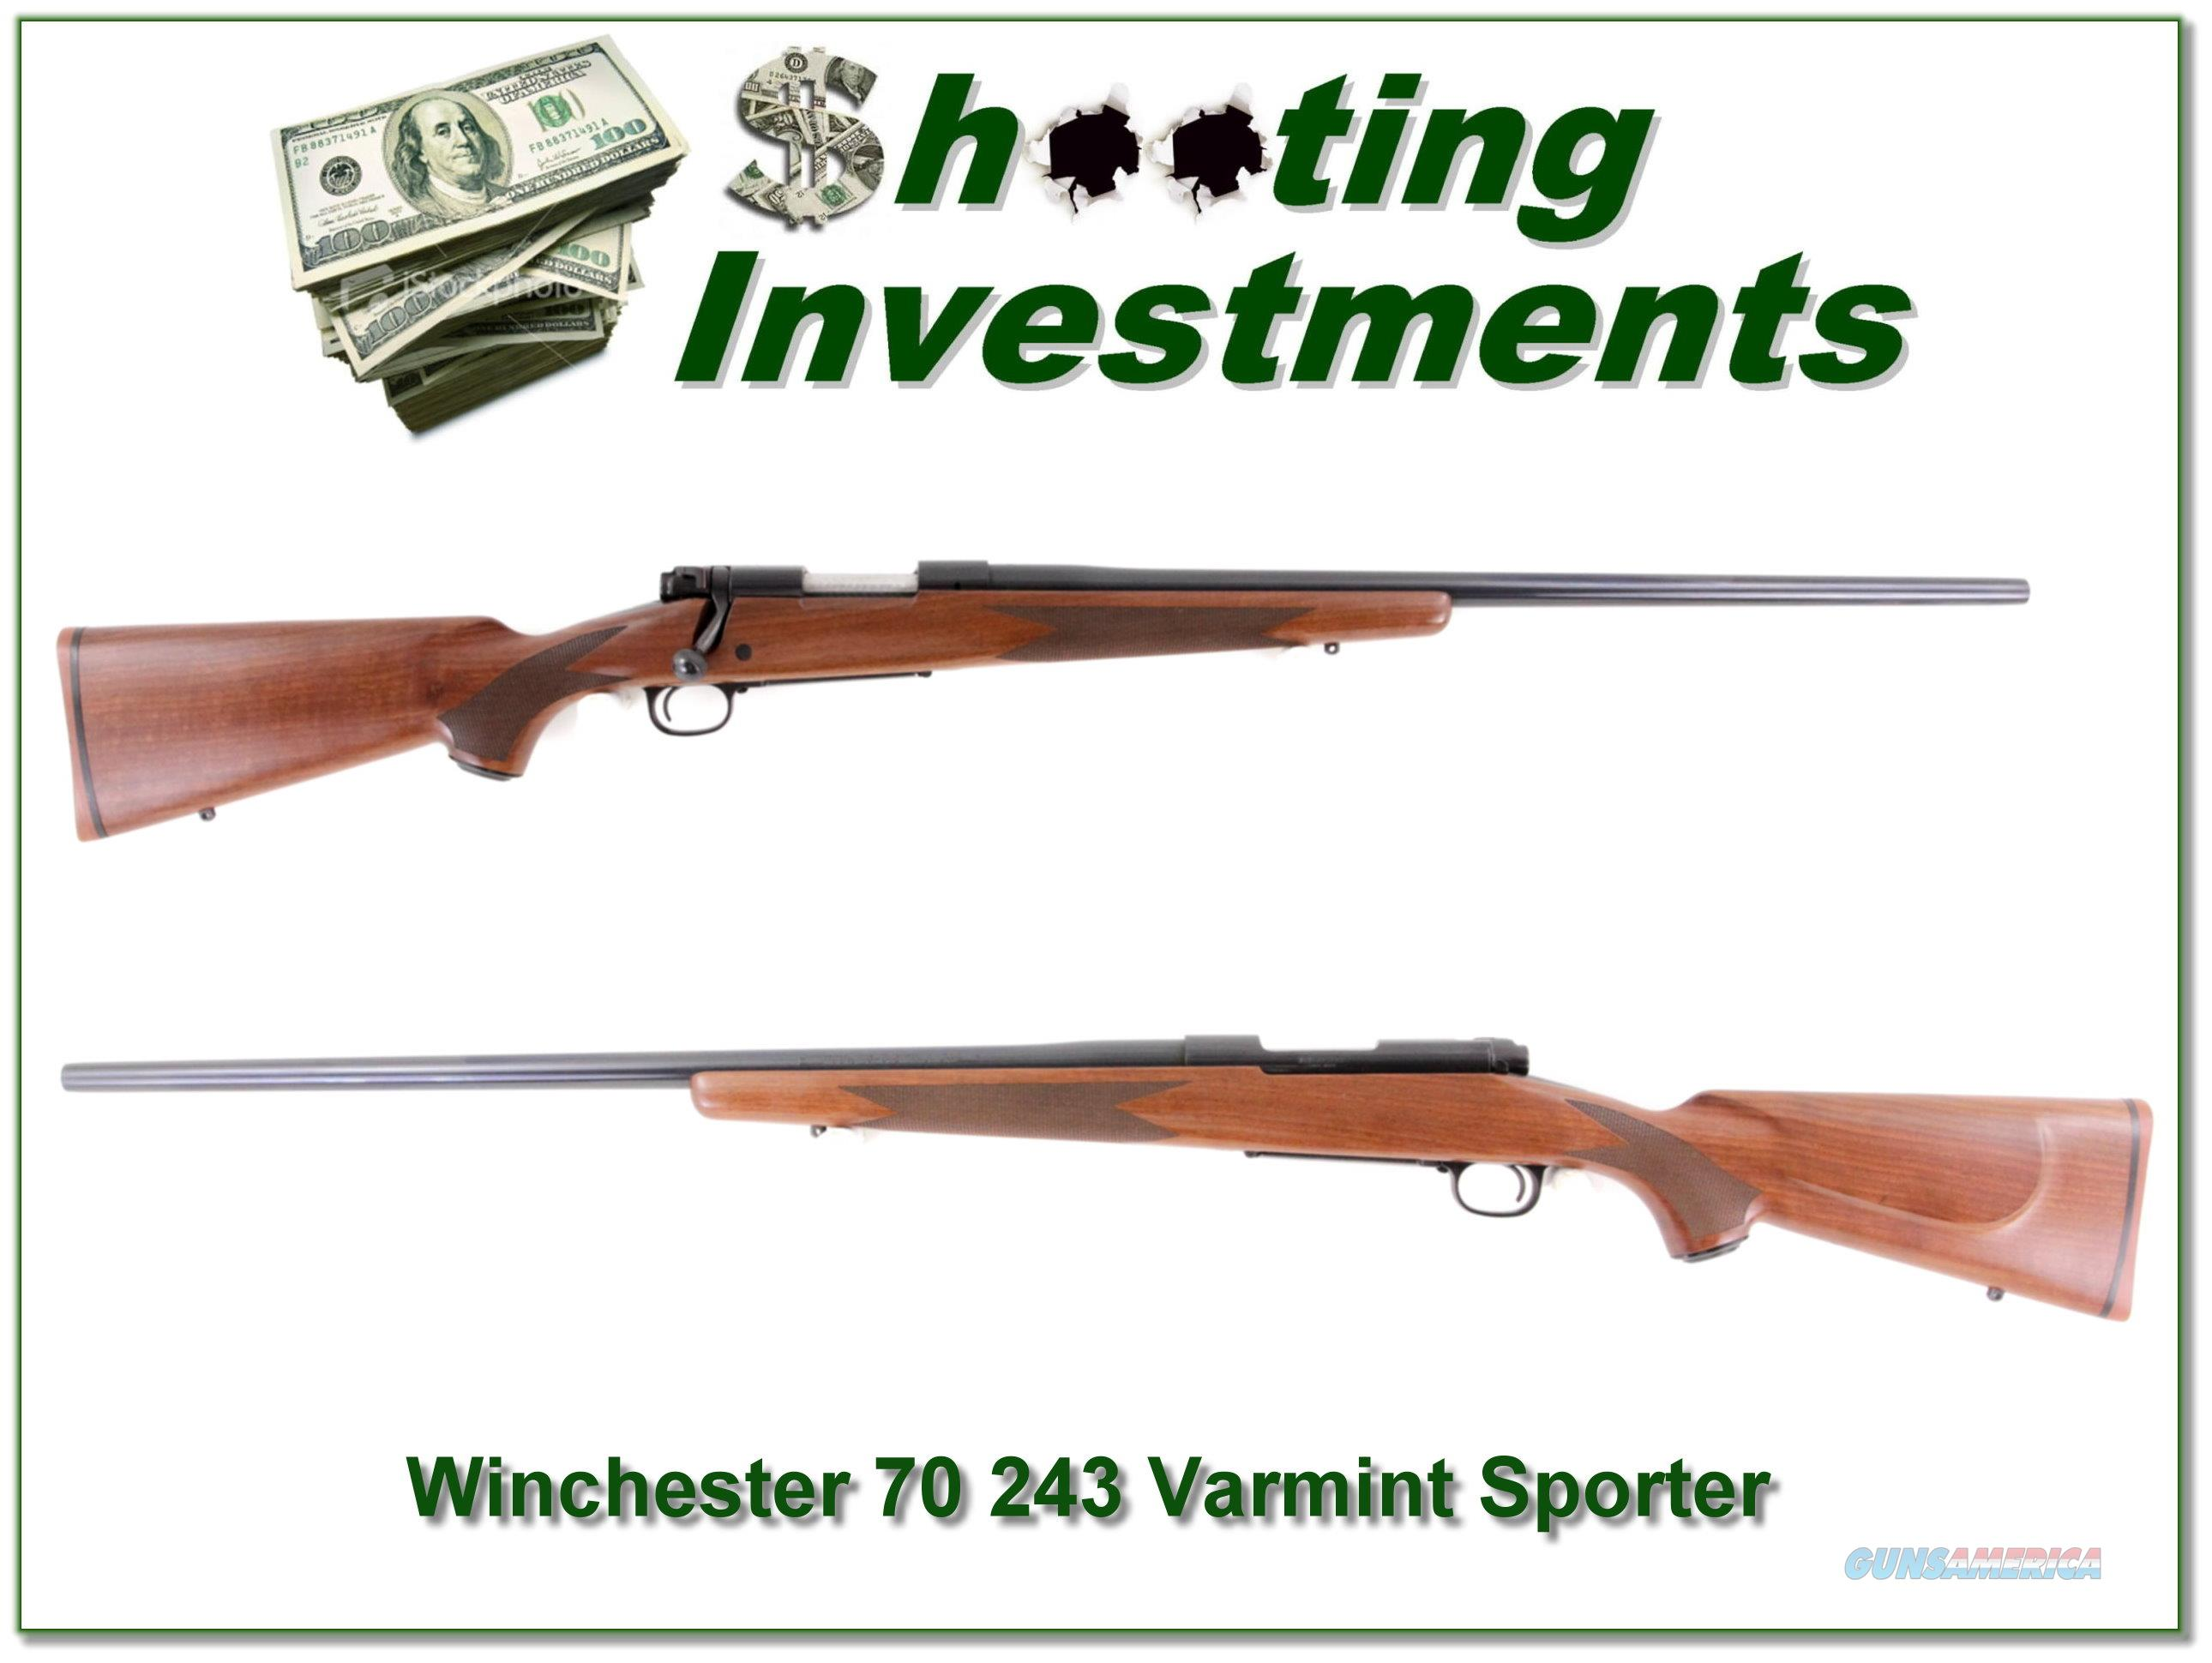 Winchester 70 243 Varmint Sporter near new!  Guns > Rifles > Winchester Rifles - Modern Bolt/Auto/Single > Model 70 > Post-64